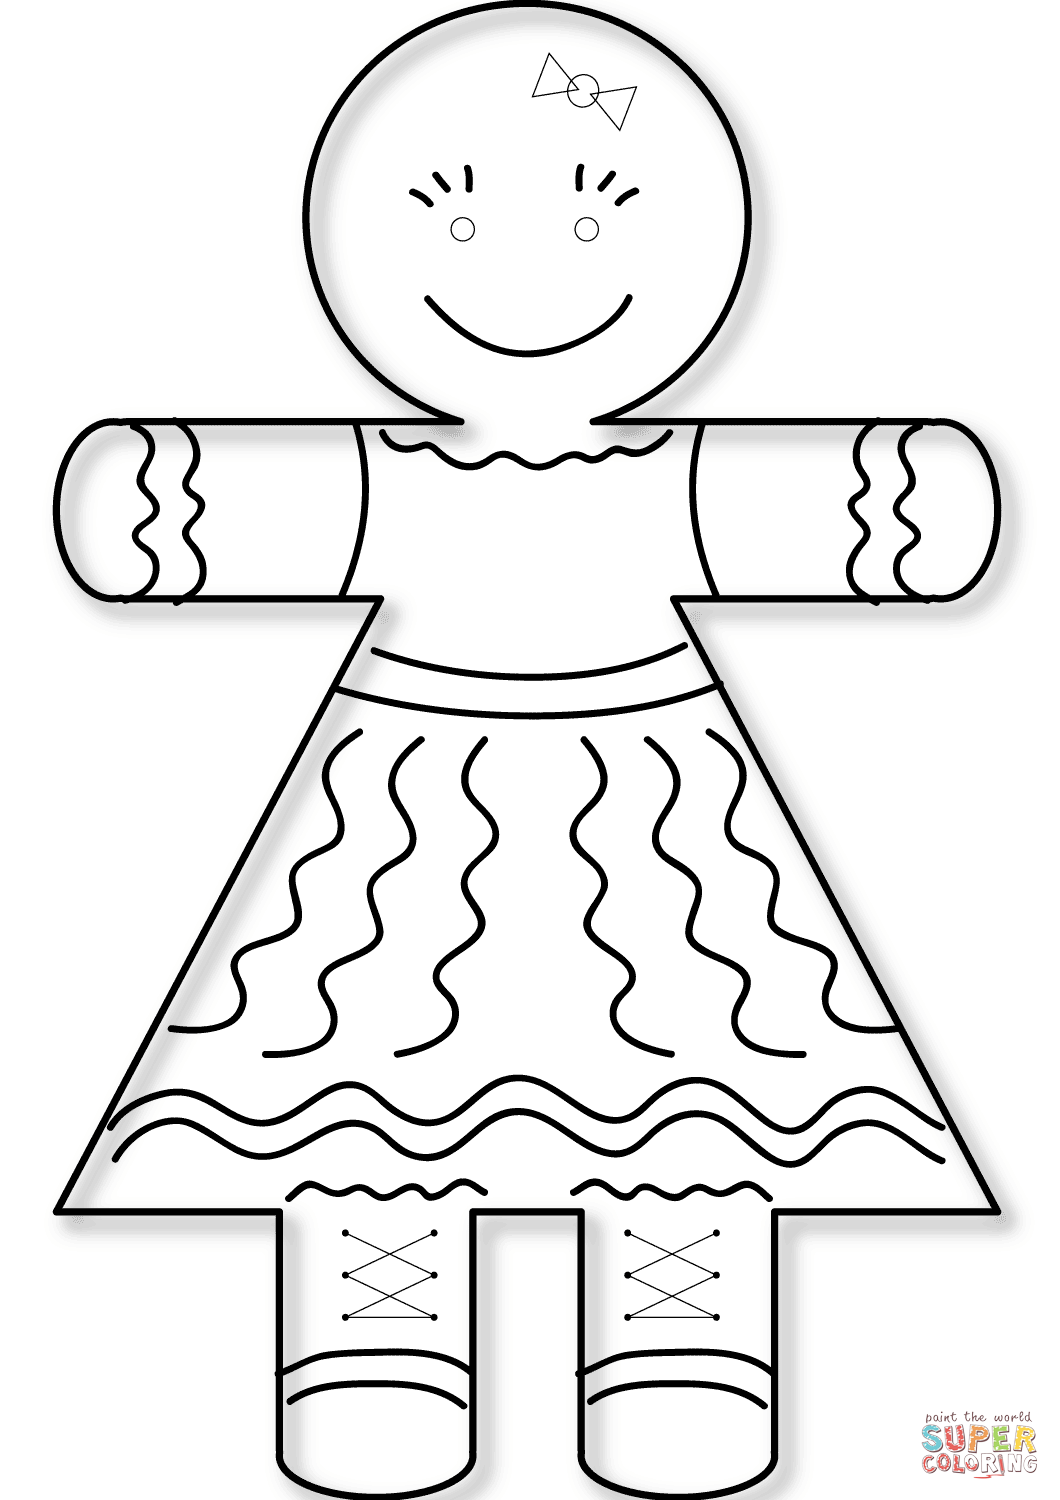 Gingerbread girl coloring sheet